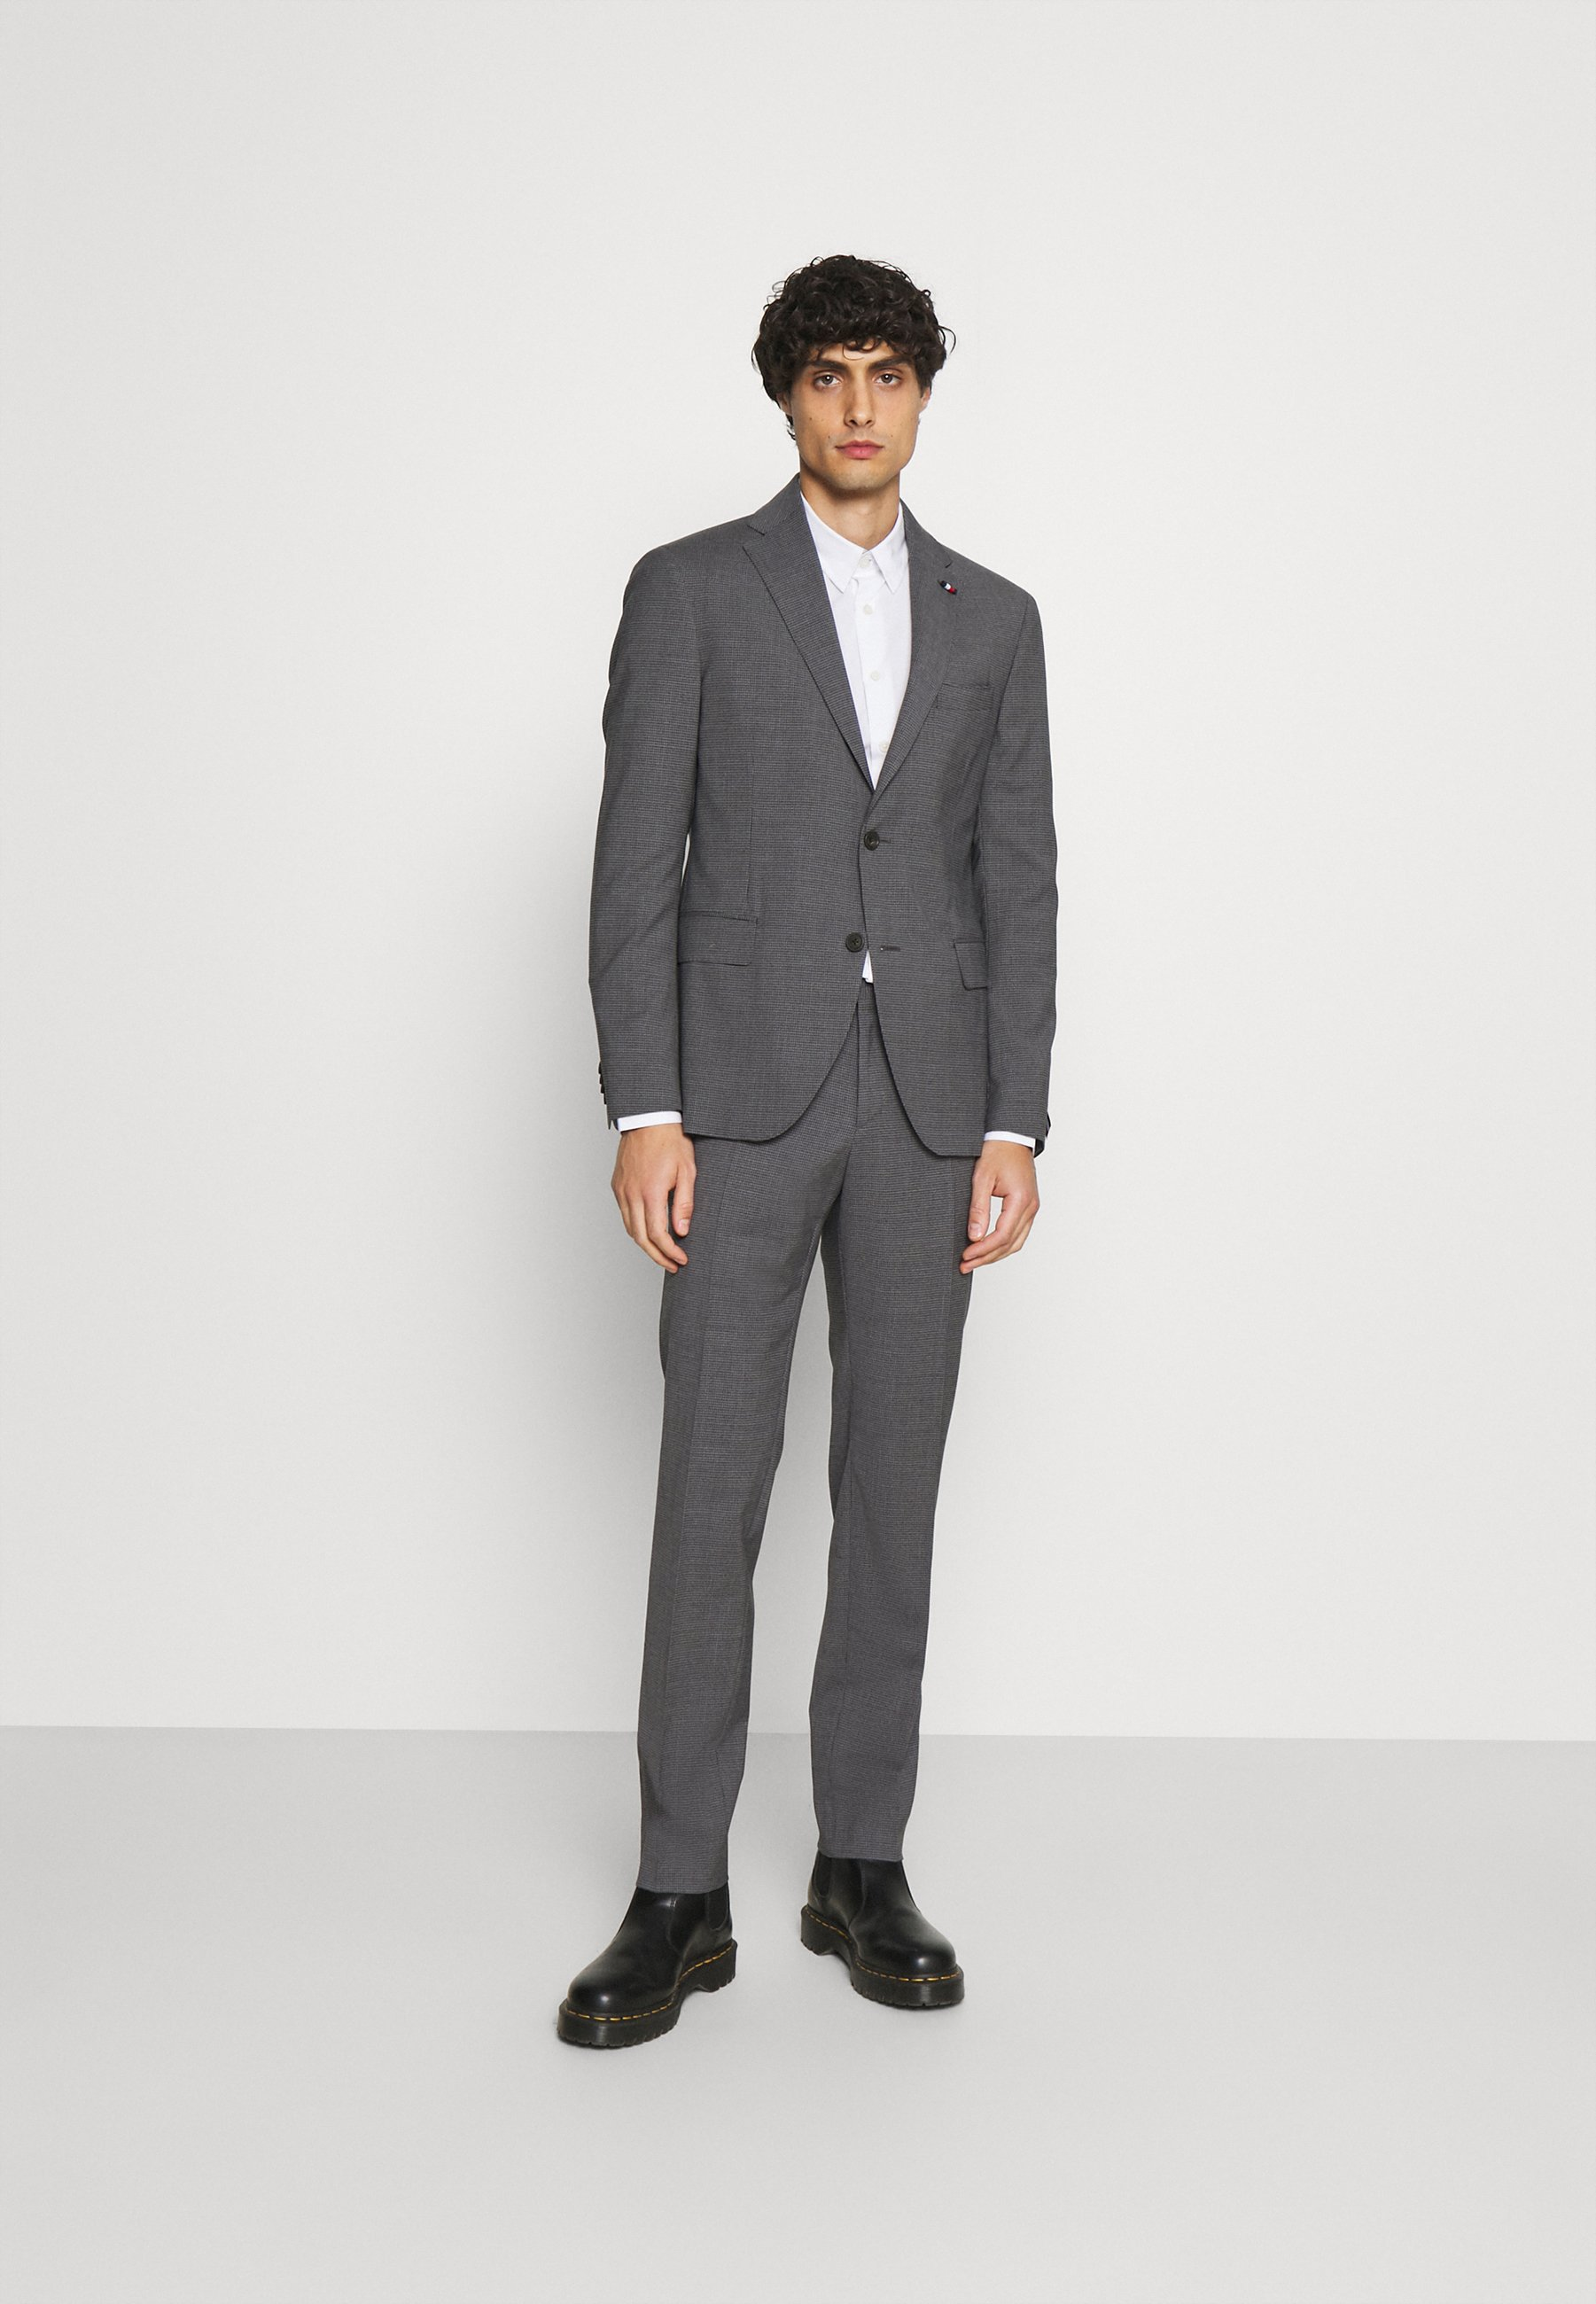 Homme FLAP FULLY LINED VENTS FLAT FRONT TROUSER SET - Costume